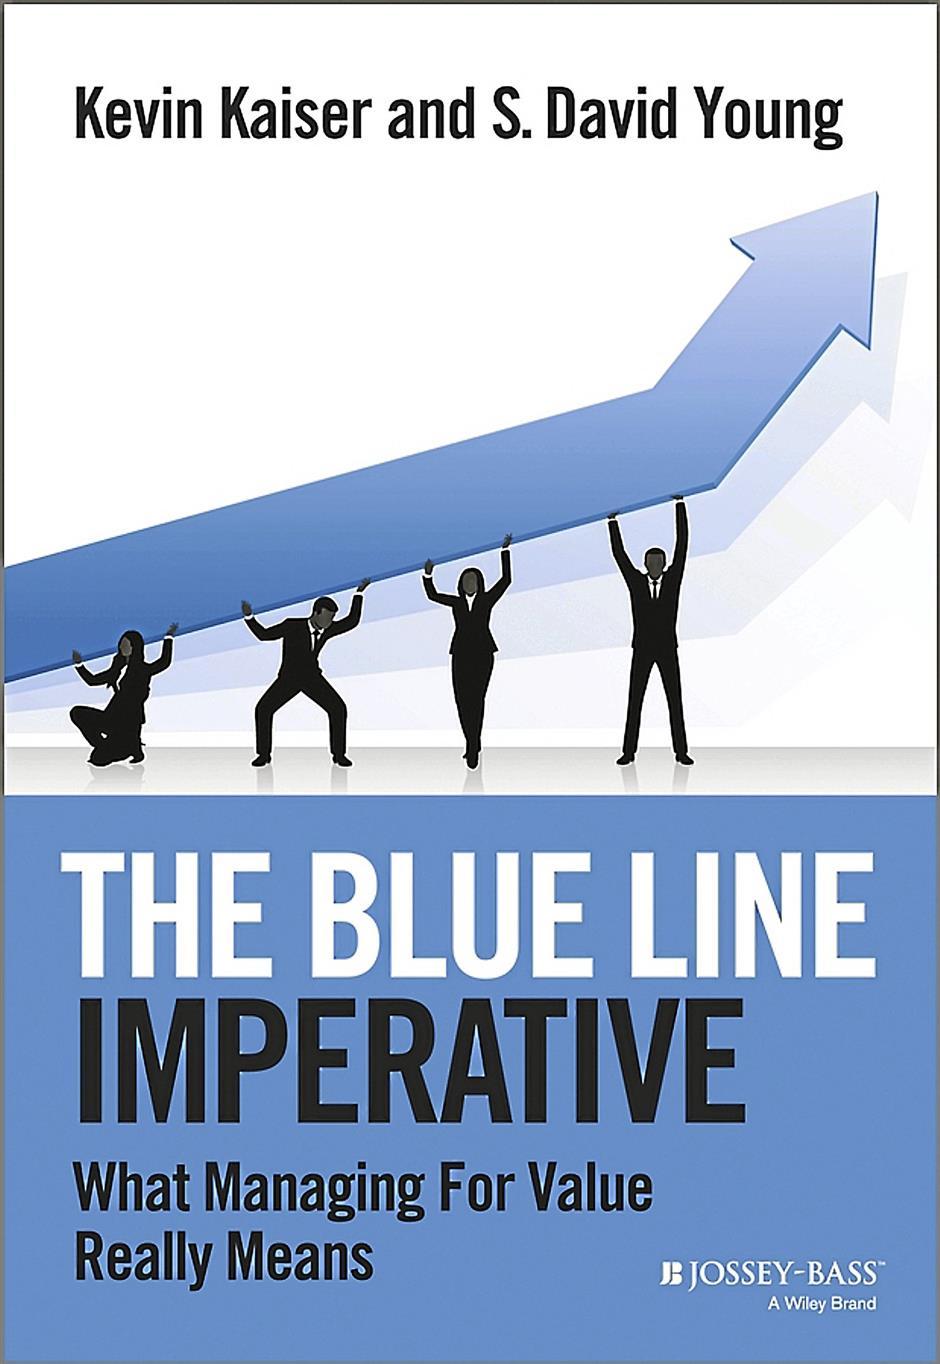 The Blue Line Imperative: What managing for value really meansAuthor: Kevin Kaiser and S. David YoungPublisher: Wiley & SonsISBN: 978-1-118-51088-9